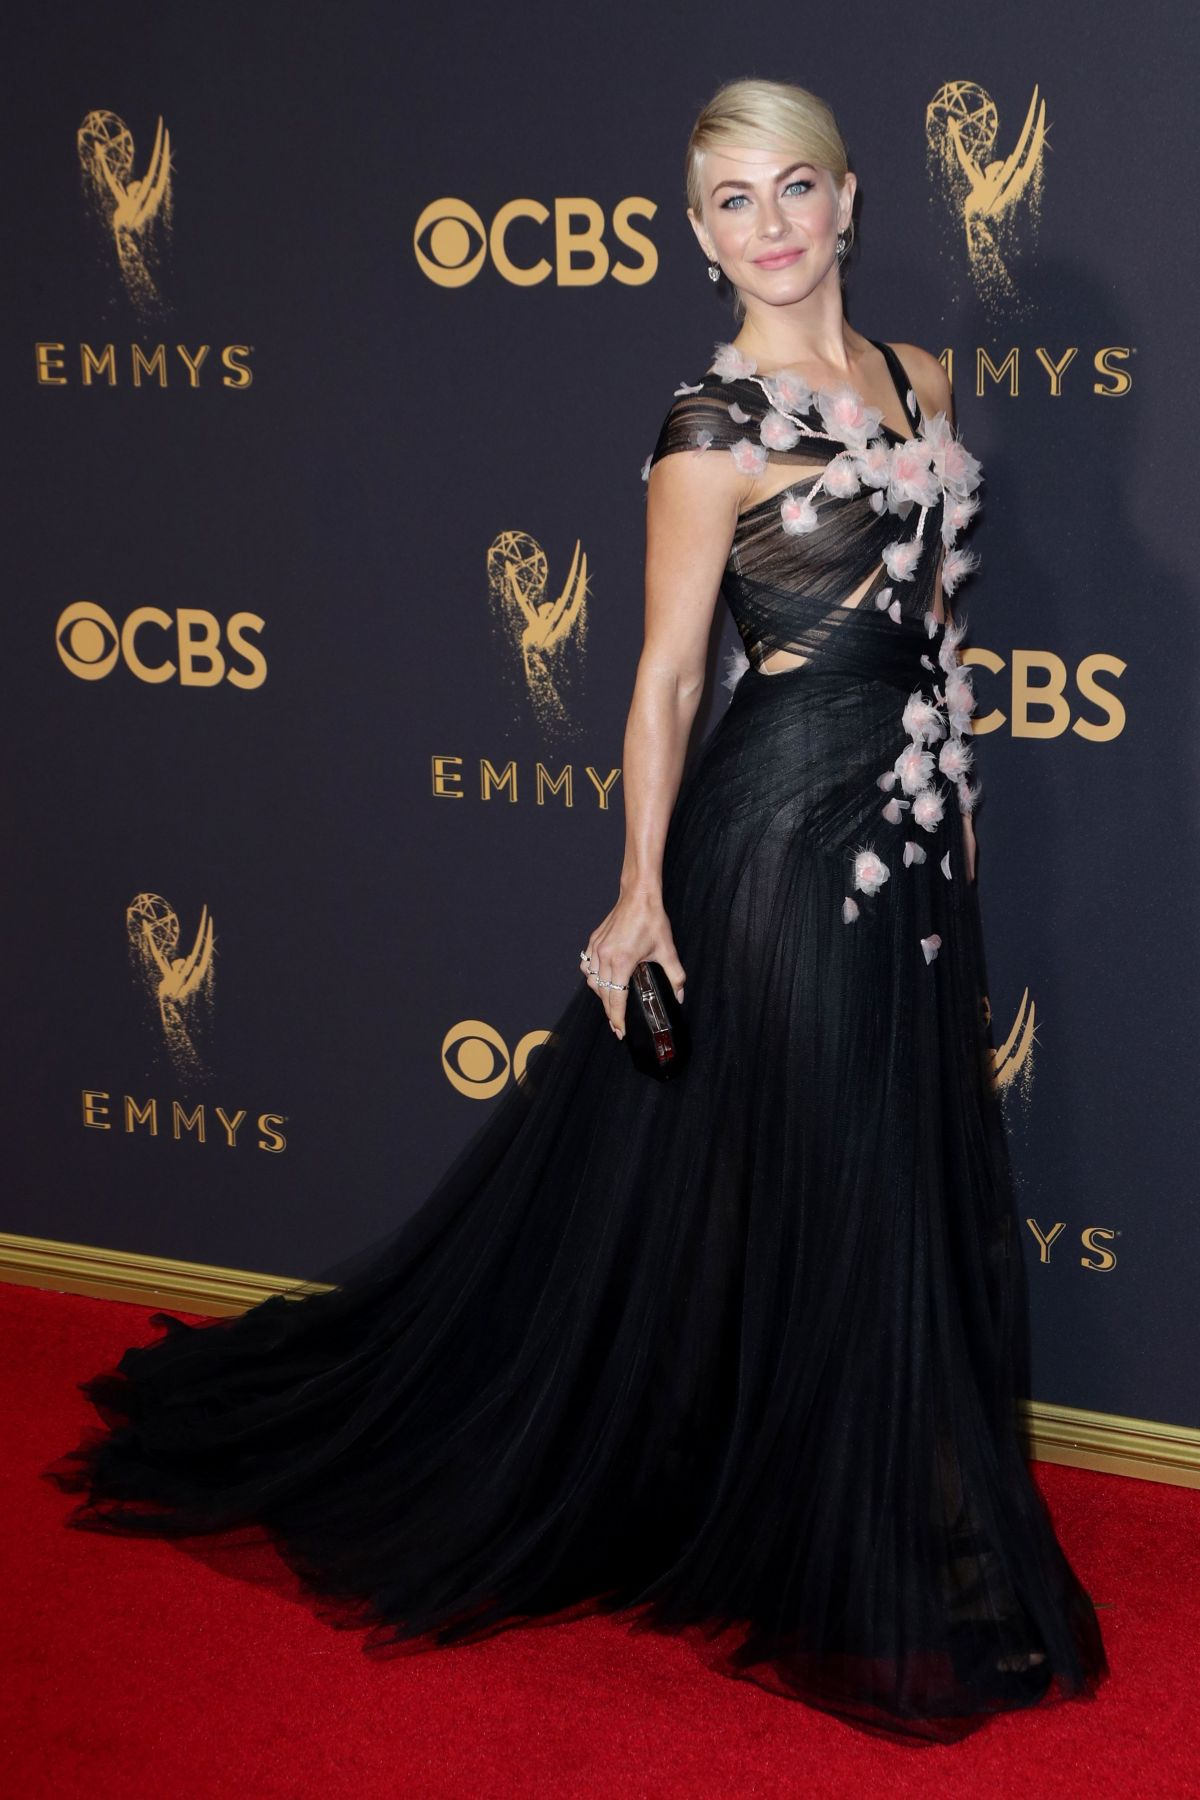 Julianne Hough at 69th Annual Primetime EMMY Awards held at Microsoft Theater in Los Angeles